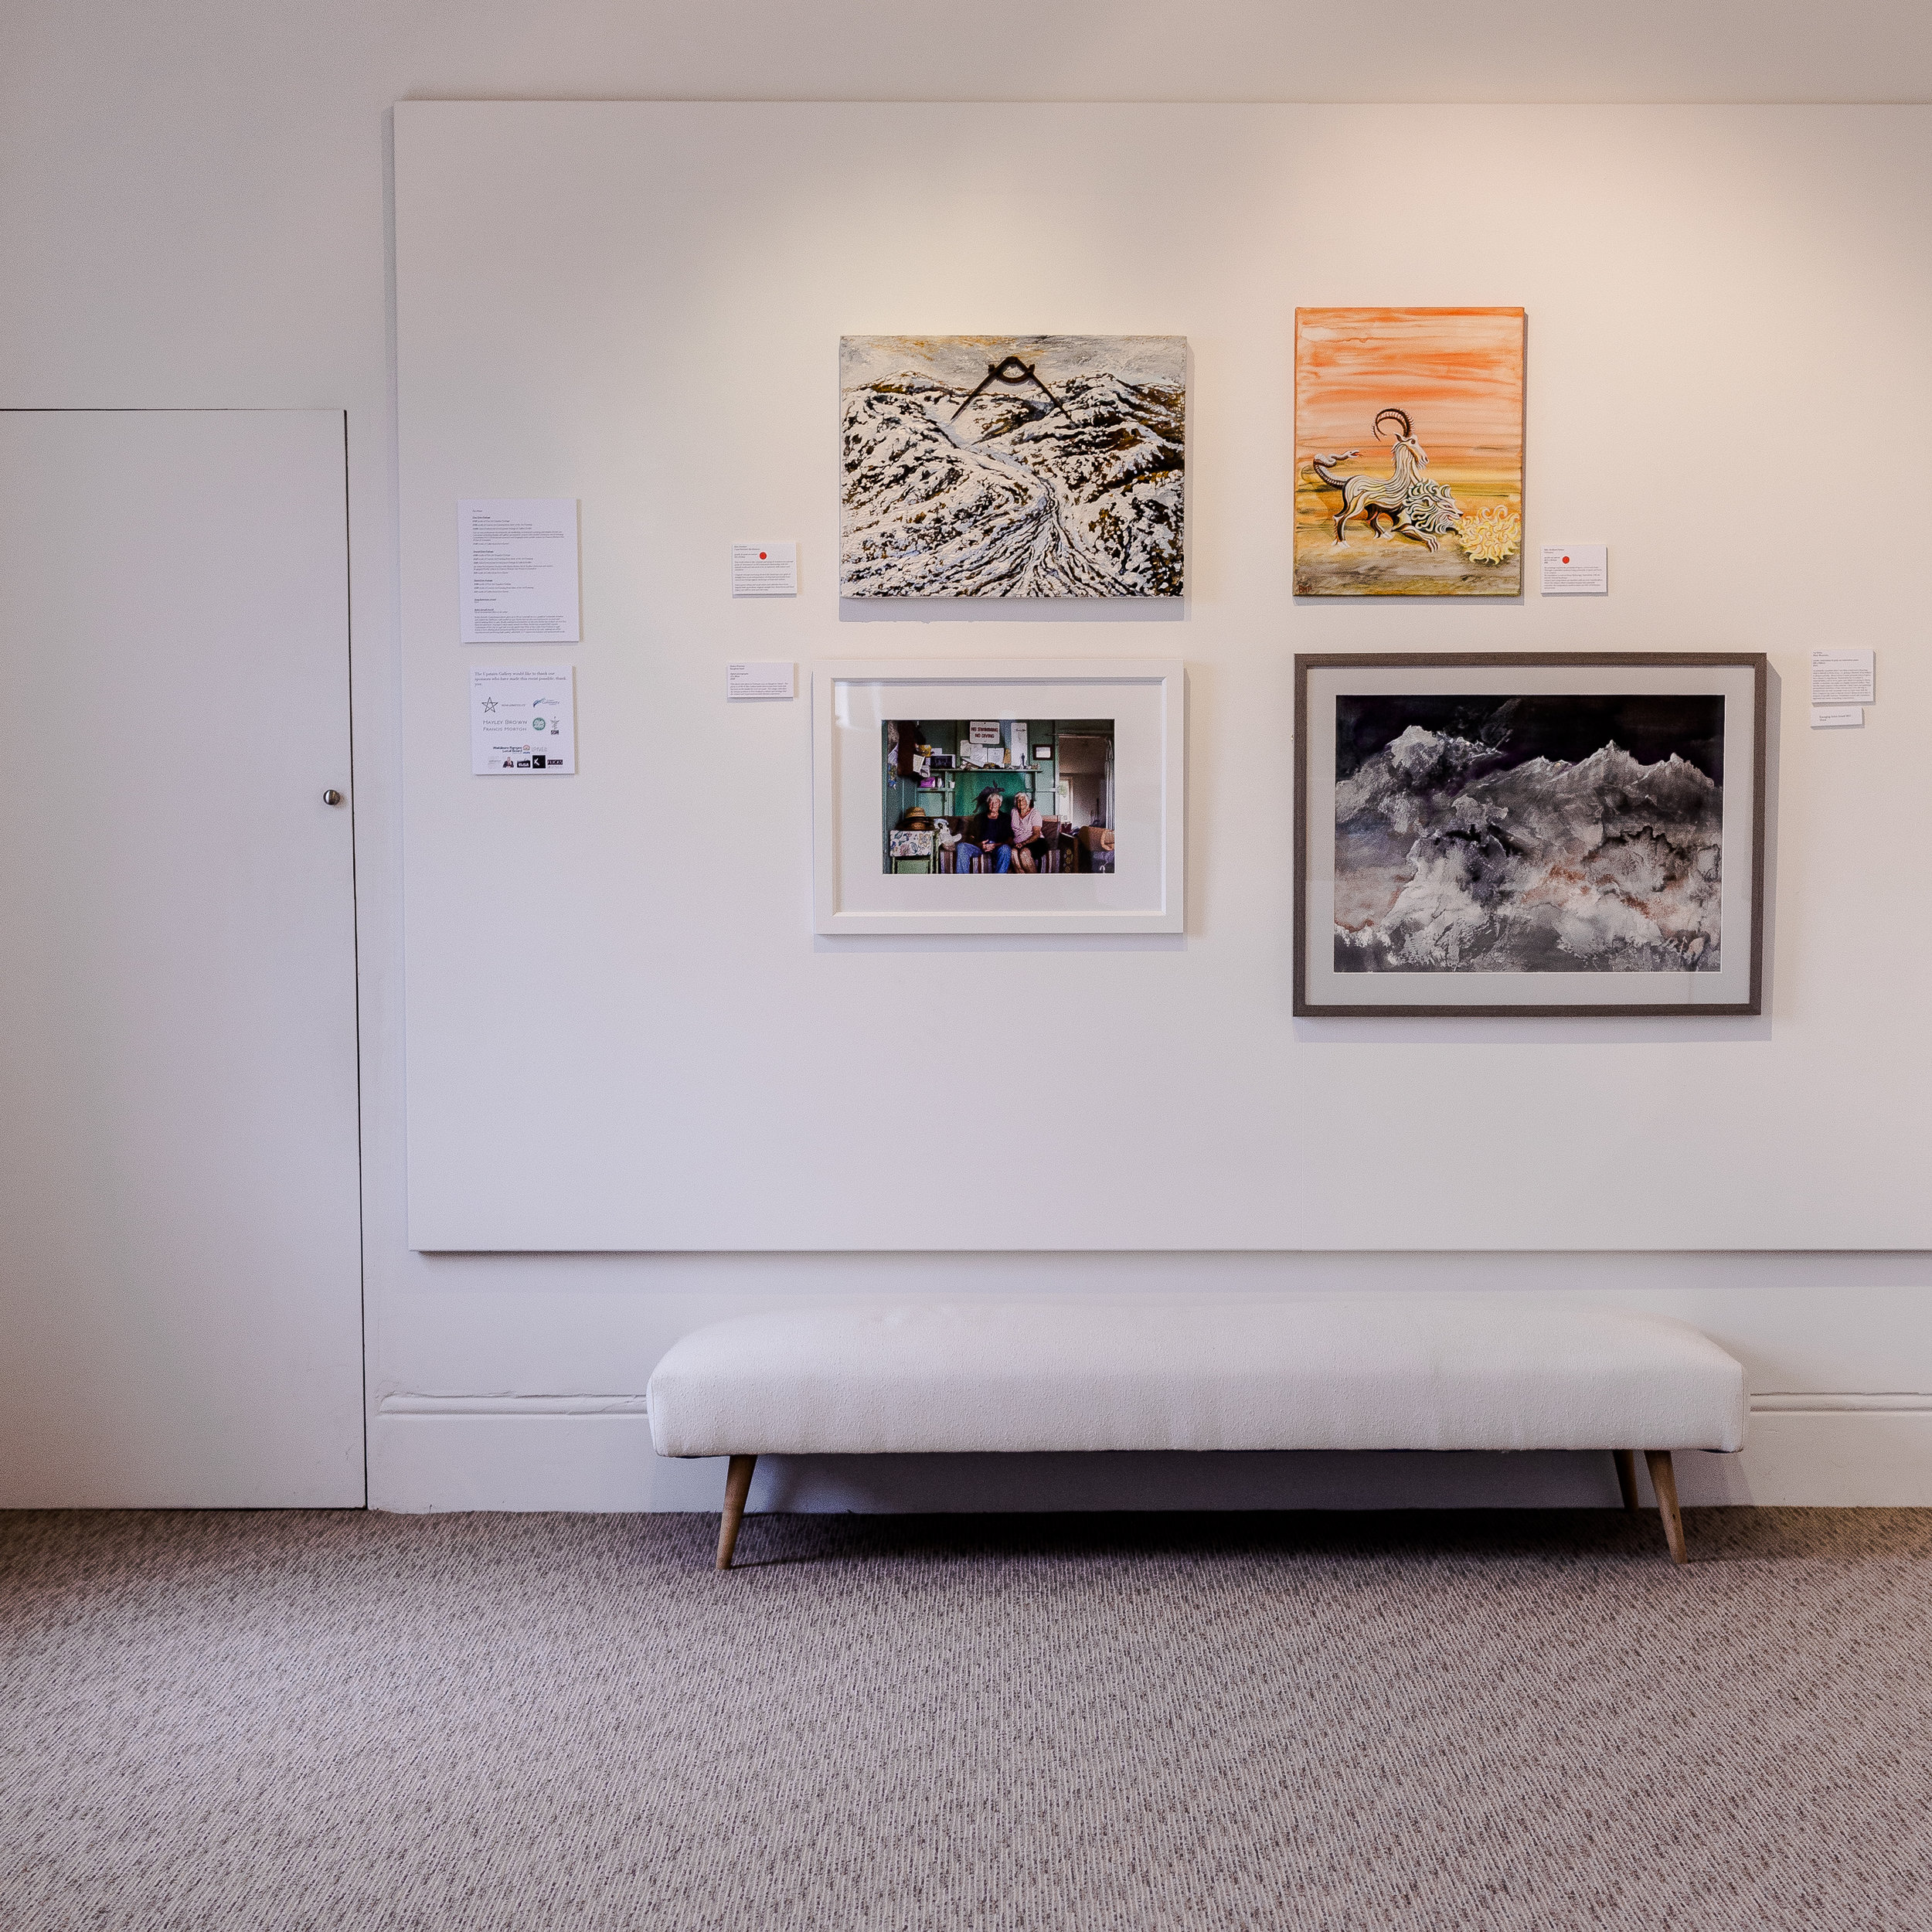 exhibitions - Showcasing solo and group work, community activities and members shows